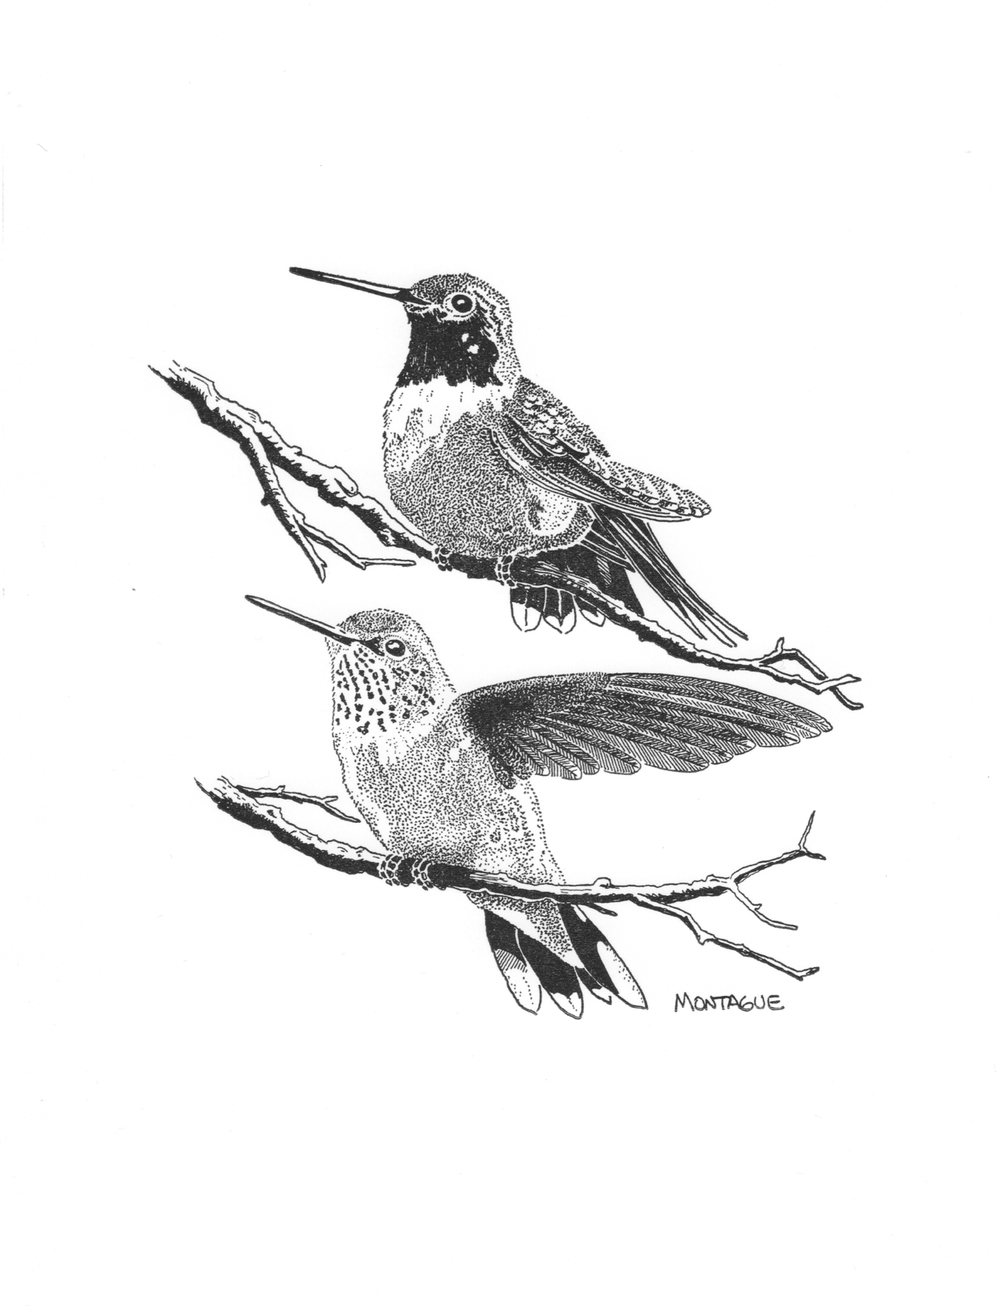 Broad-Tailed Hummingbirds • © Fred Montague  $50 • Letterpress Print • image 6 x 9 • matted 12 x 16  Edition size: 880 • status: available